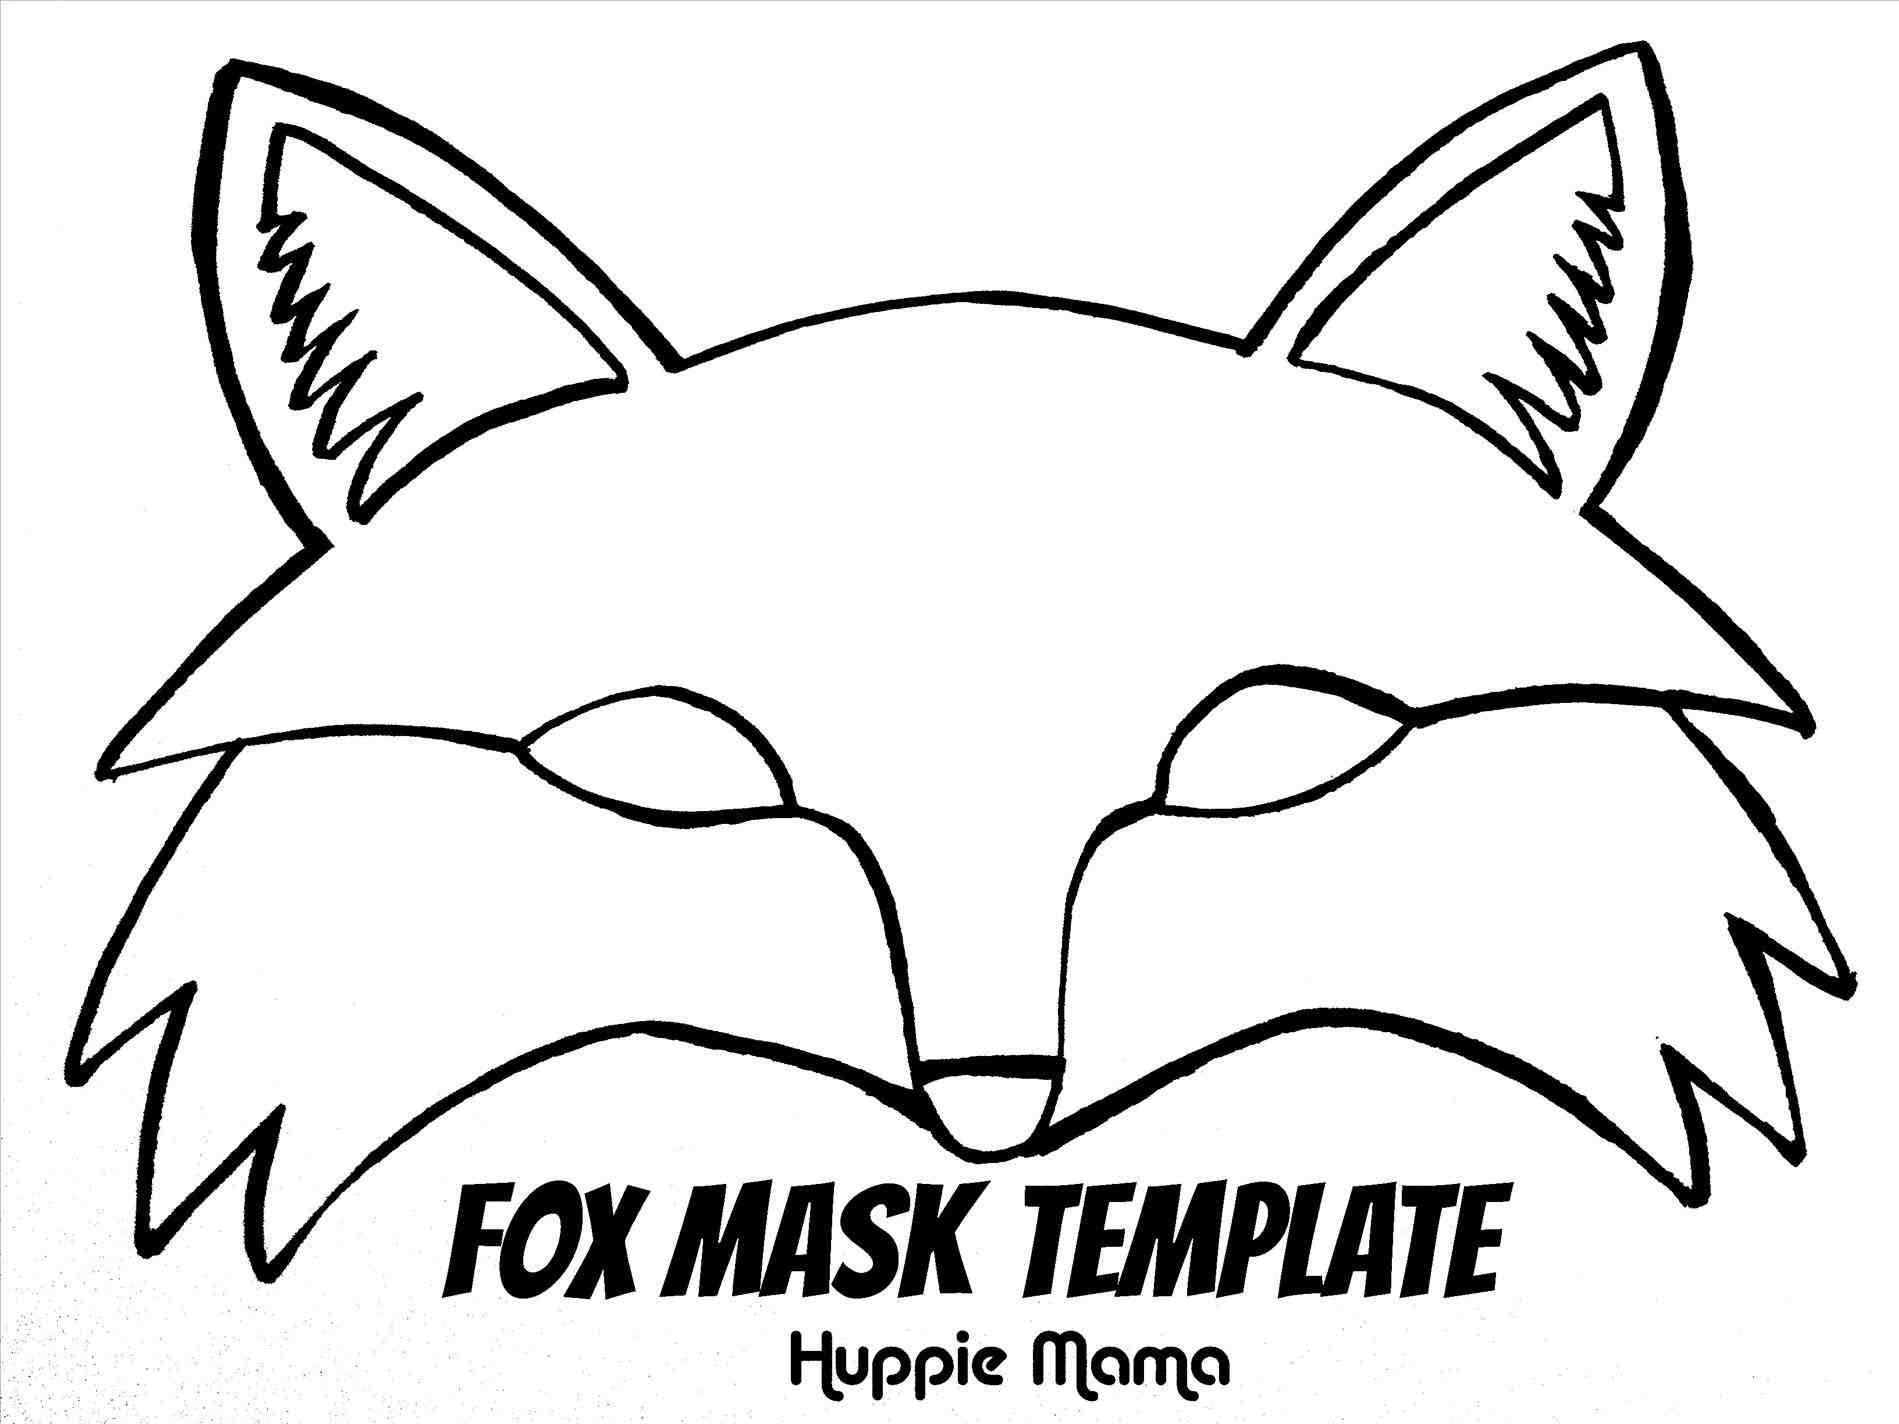 Animal Mask Clipart | Free download best Animal Mask Clipart on ...